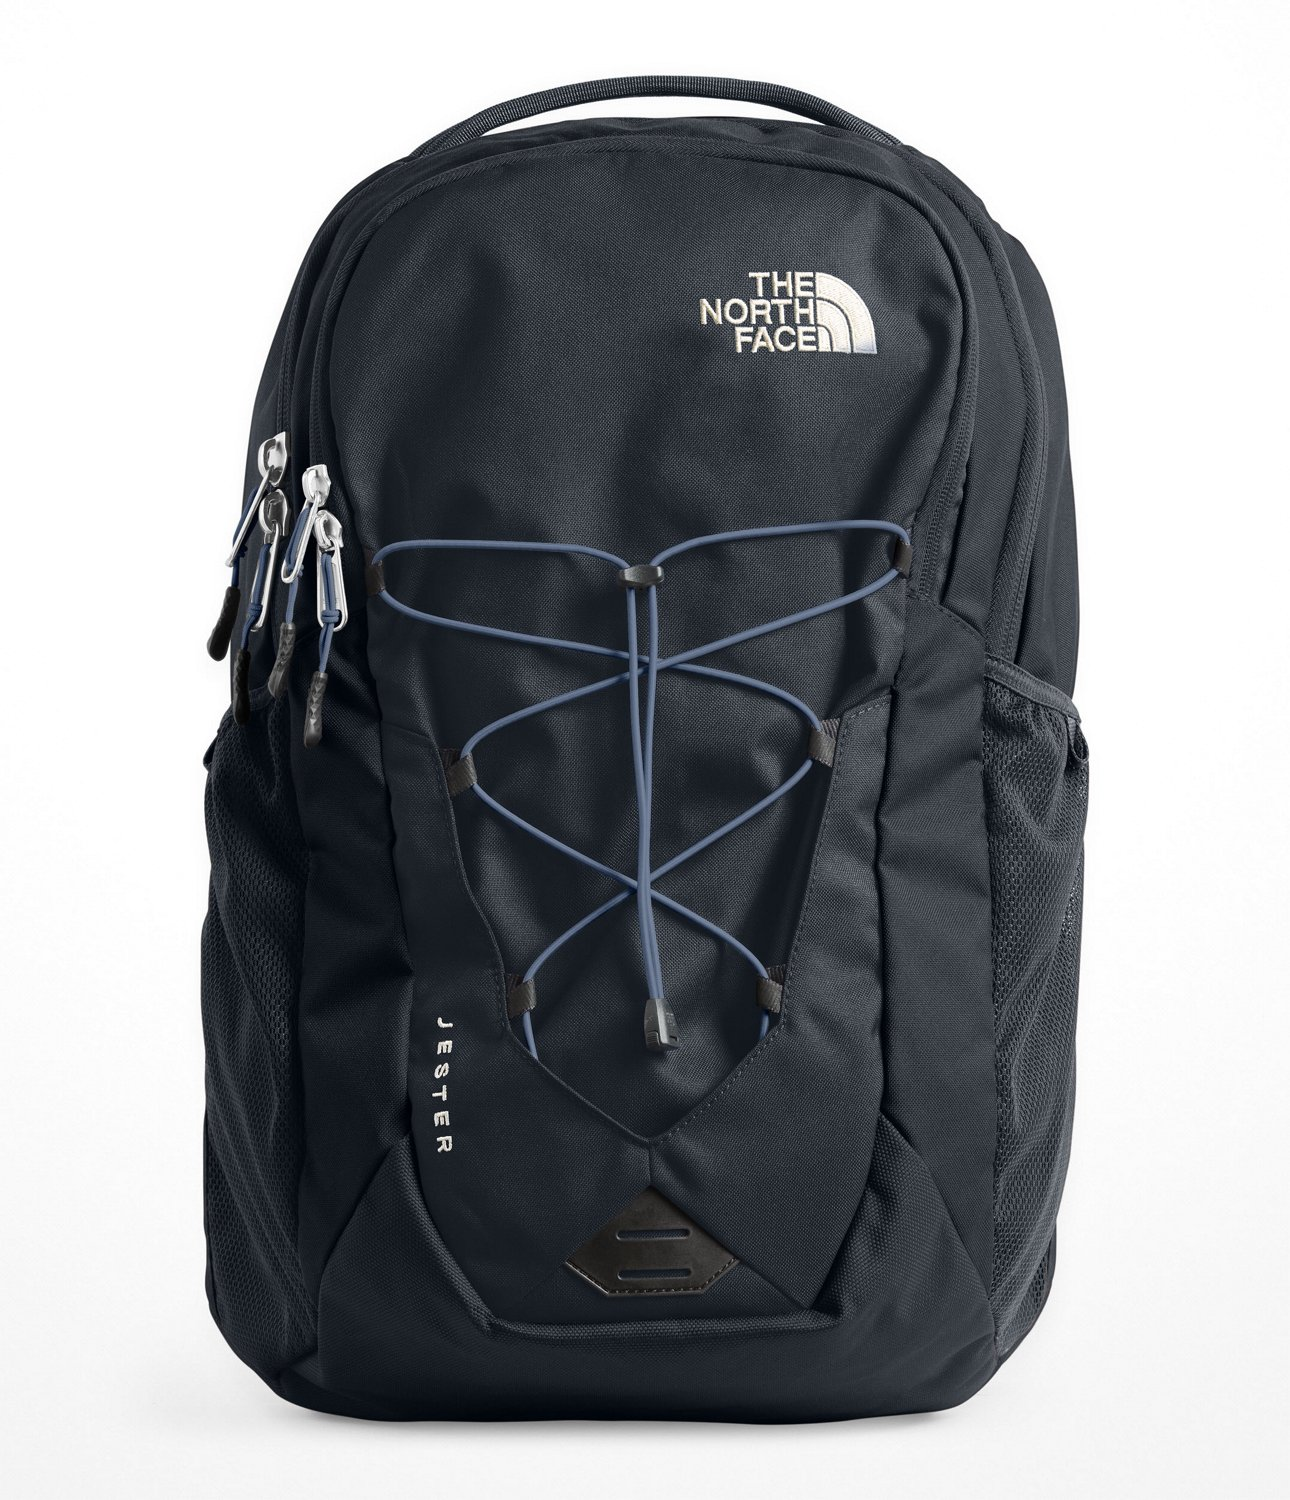 e8c9ffa5b Display product reviews for The North Face Mountain Lifestyle Jester  Backpack